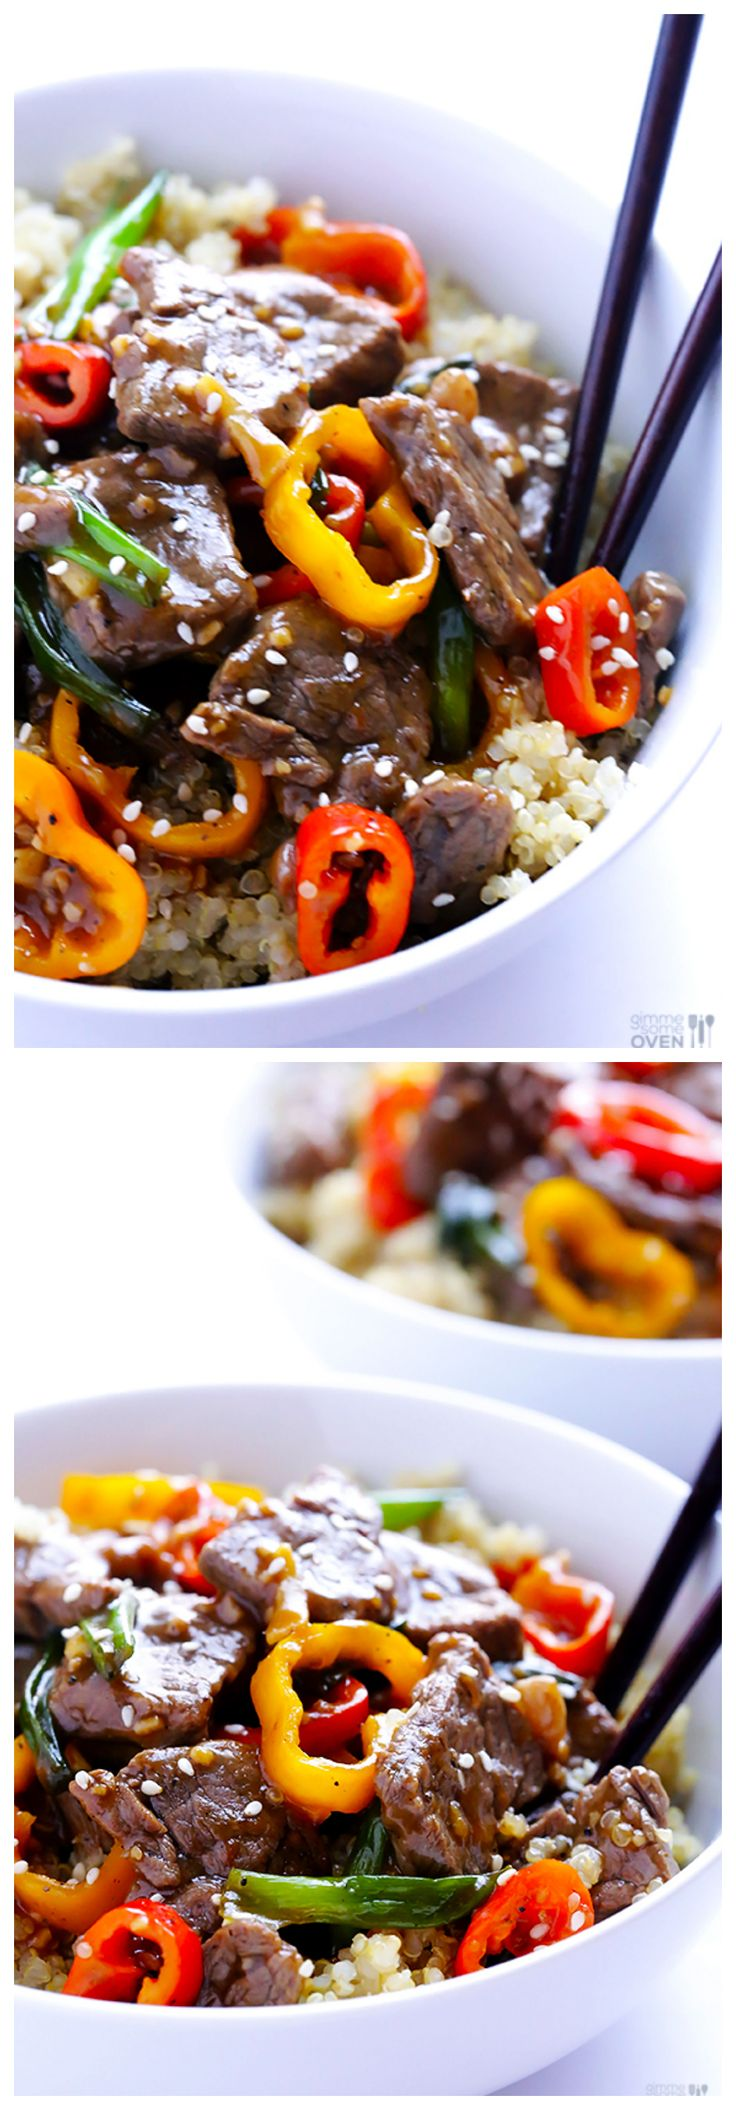 Easy Pepper Steak | gimmesomeoven.com #dinner #recipe